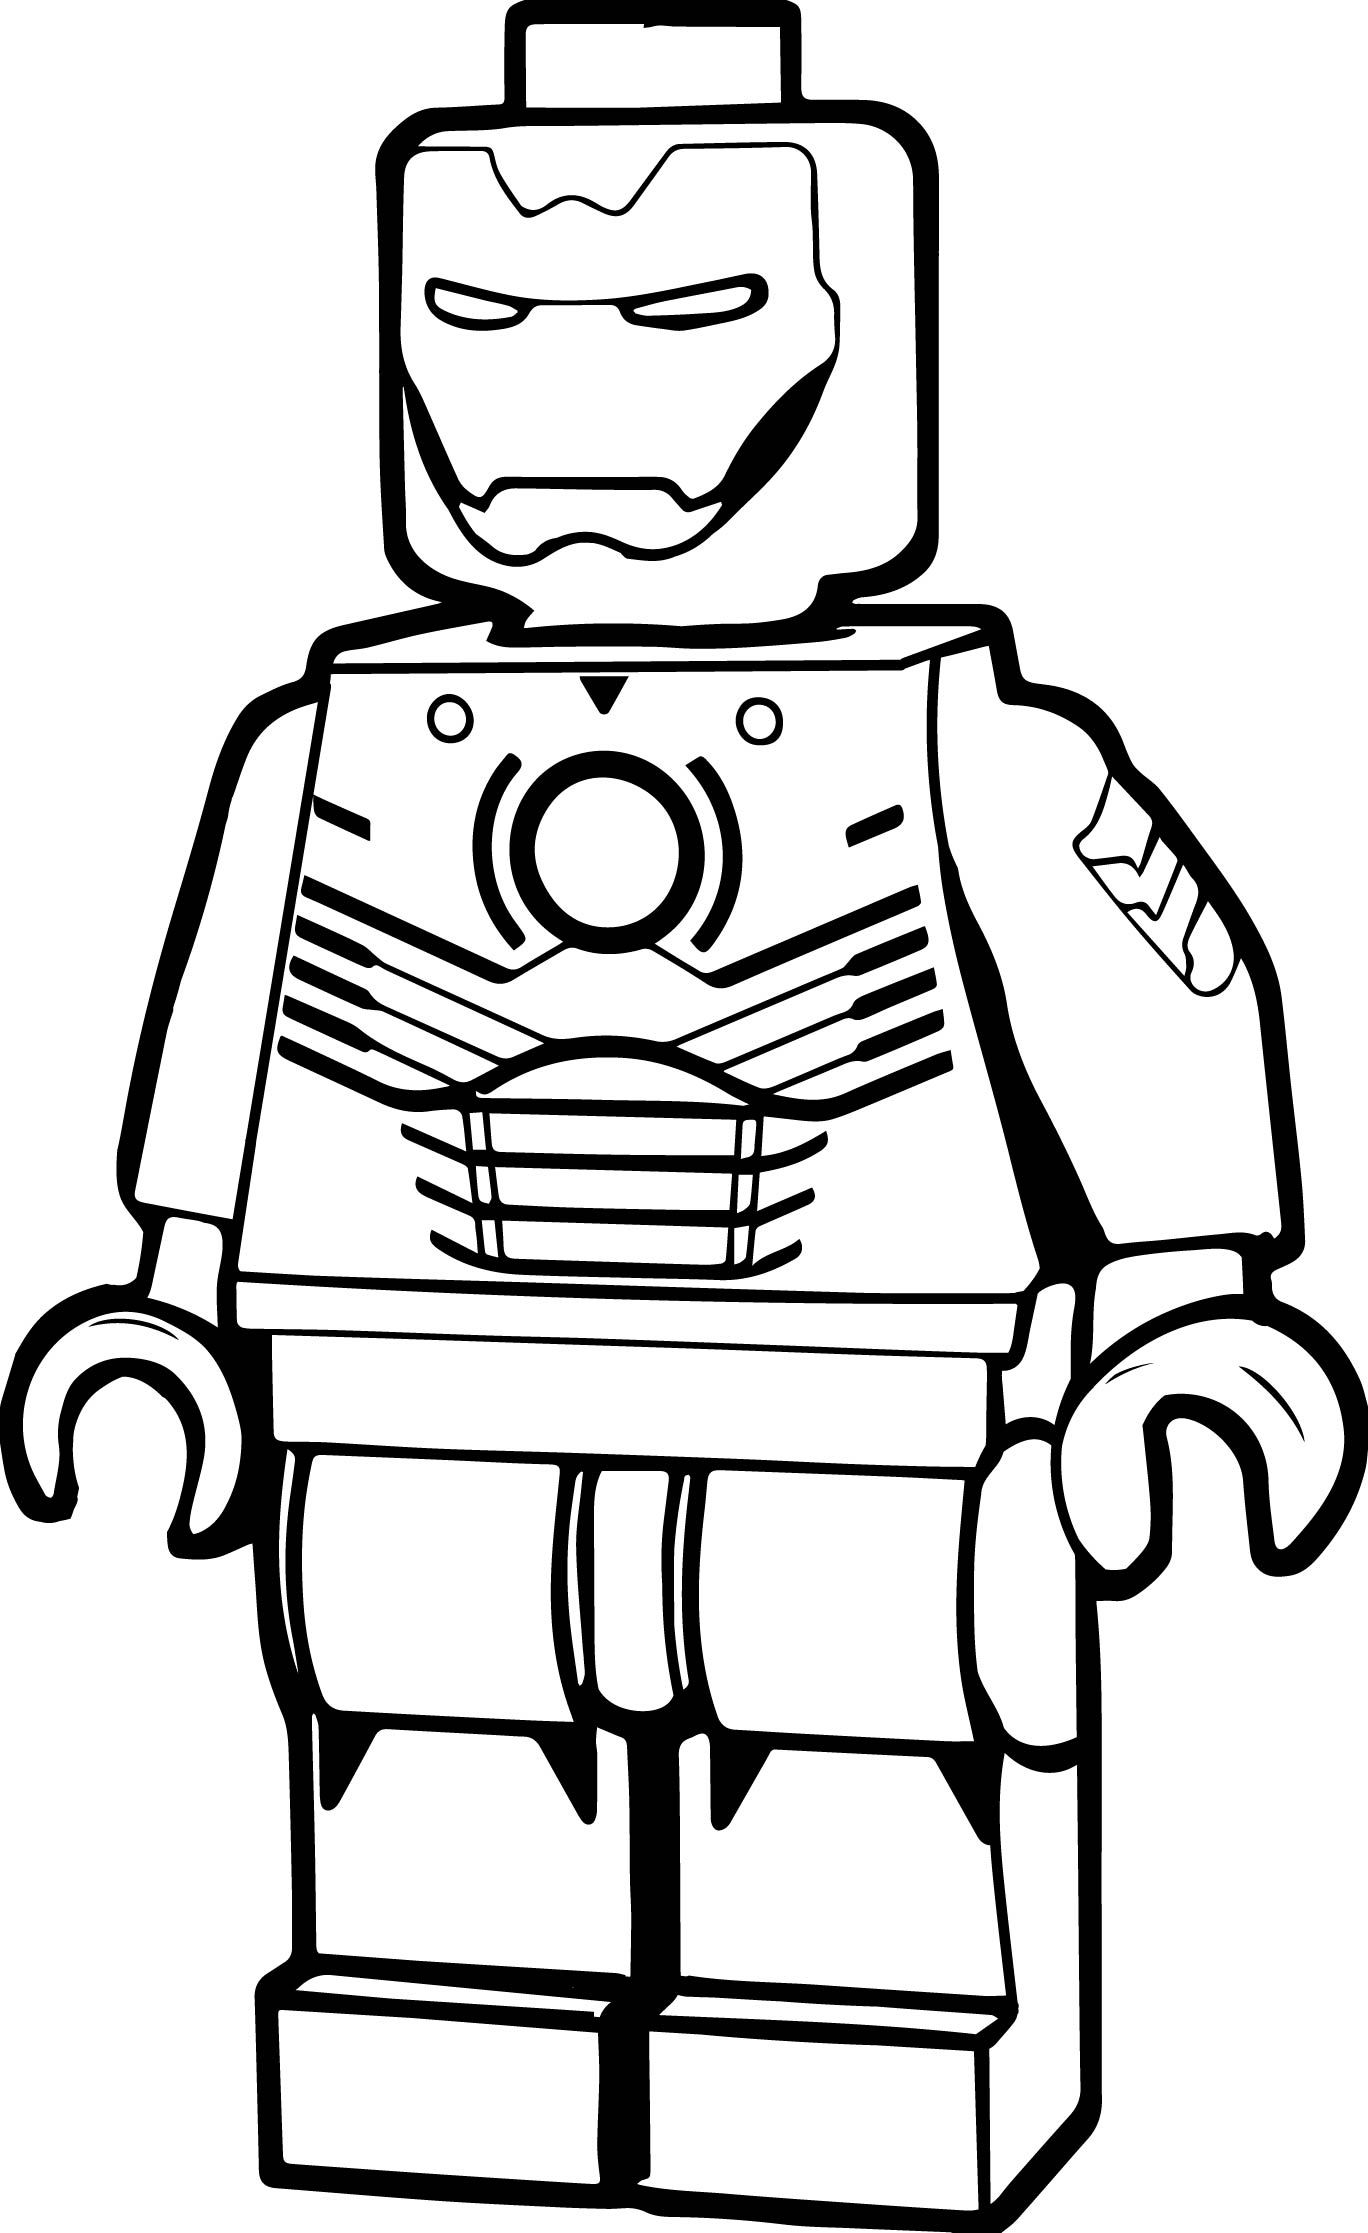 Lego Iron Man Drawing | Free download on ClipArtMag